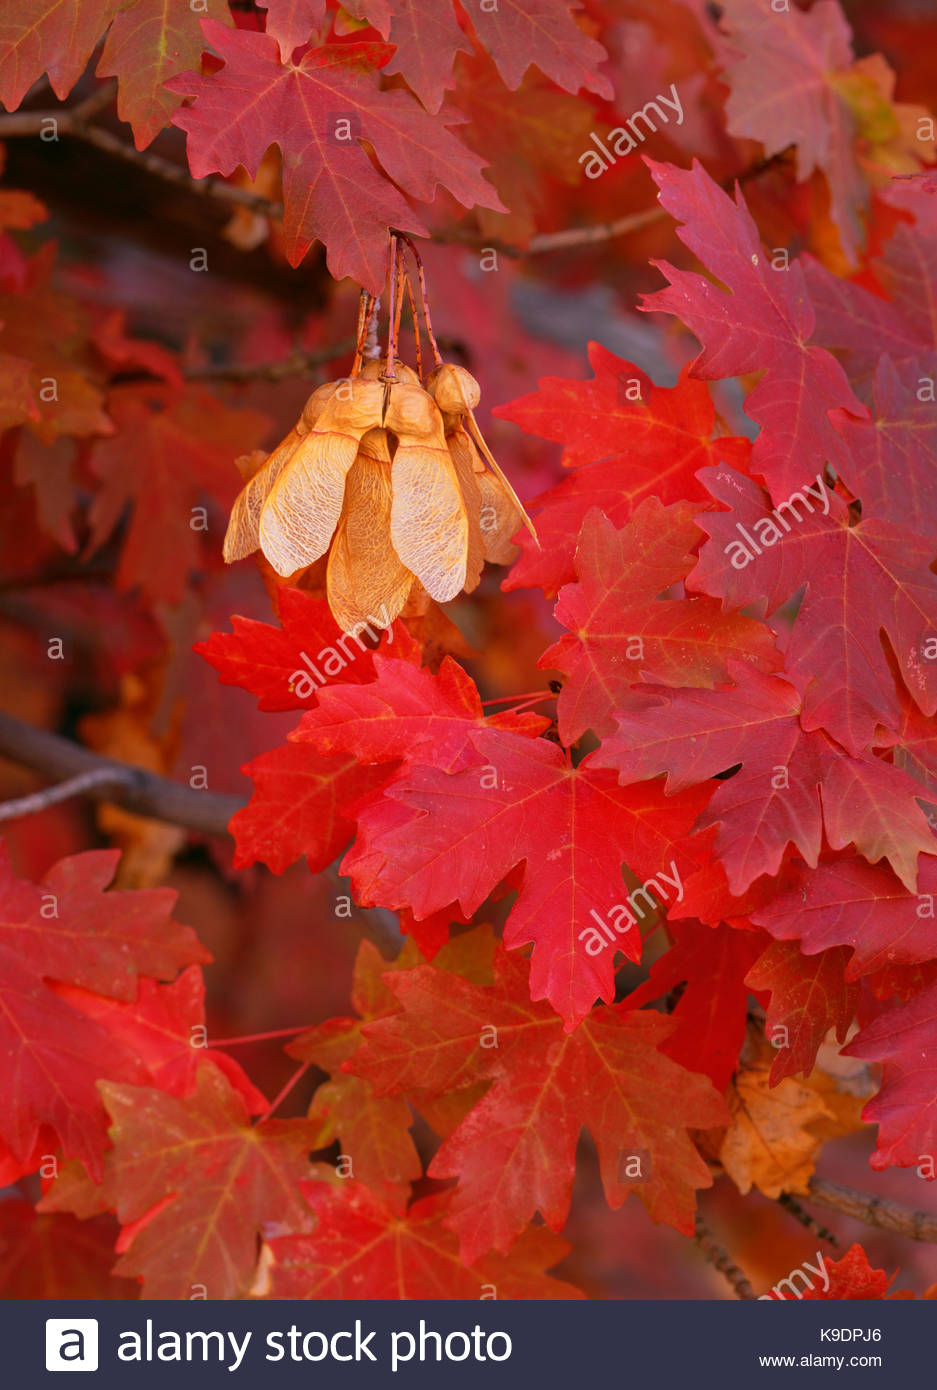 Bigtooth Maple Leaves and Seeds, Zion National Park, Utah Stock Photo